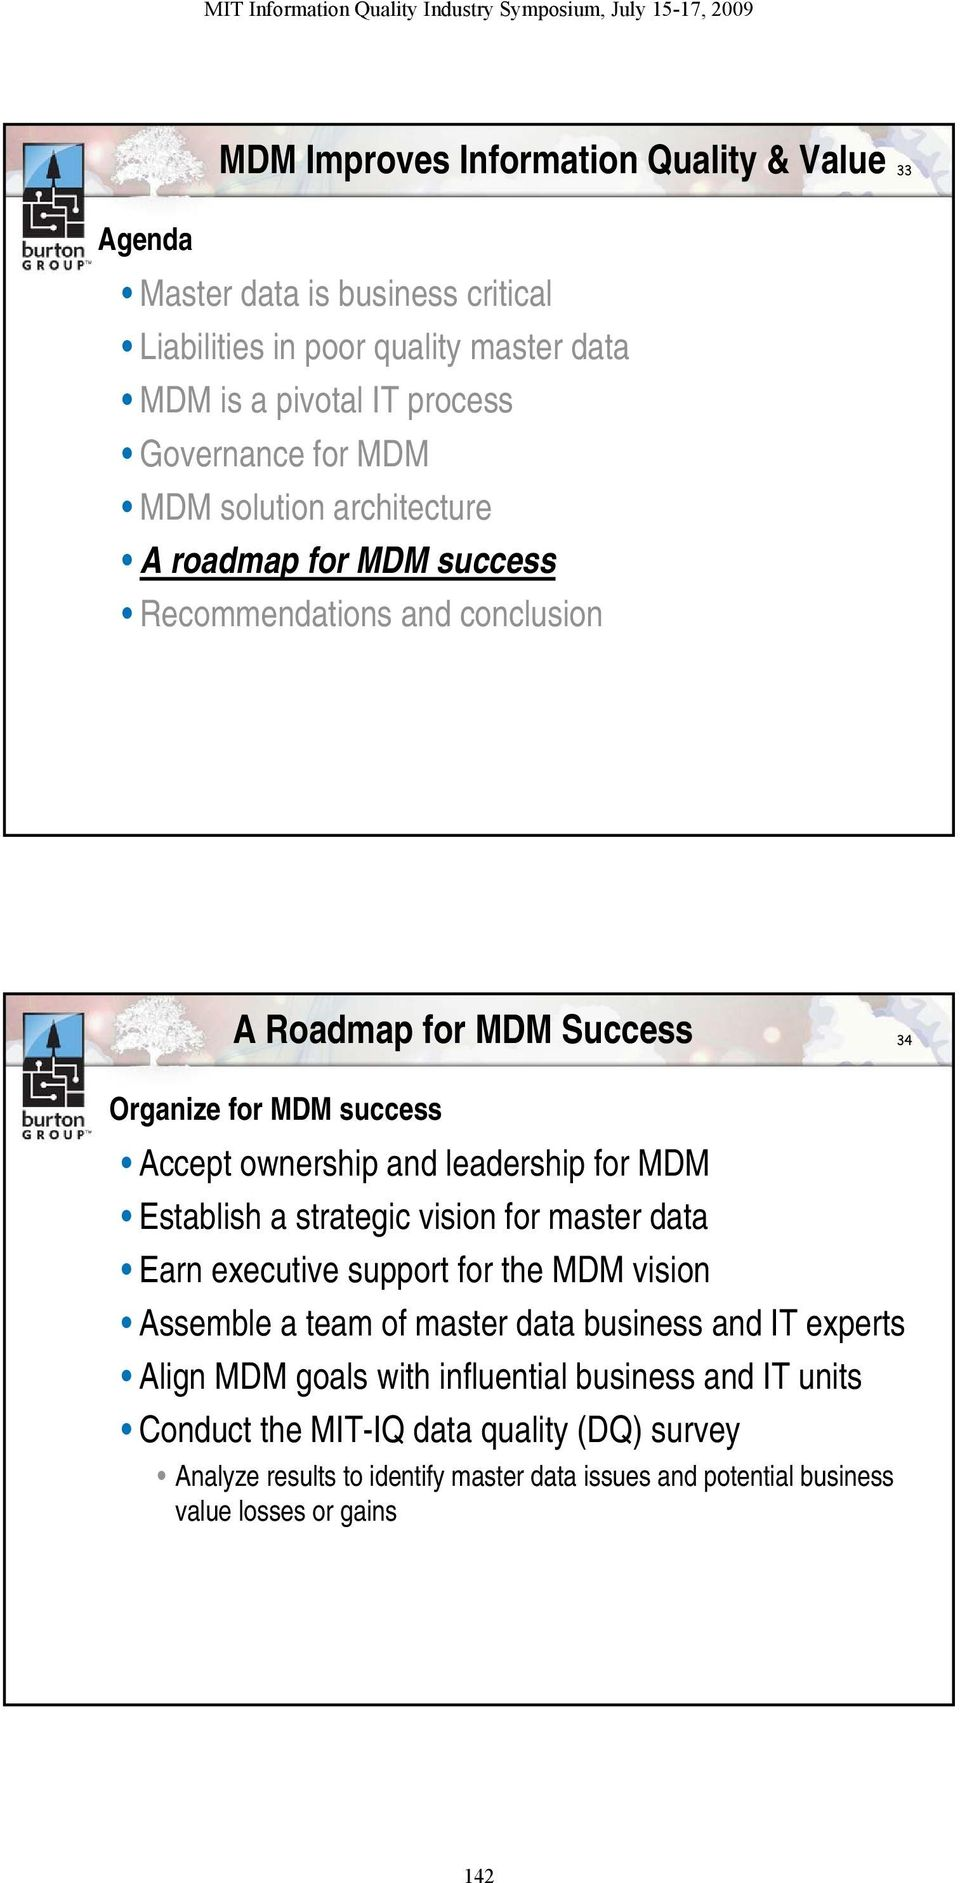 leadership for MDM Establish a strategic vision for master data Earn executive support for the MDM vision Assemble a team of master data business and IT experts Align MDM